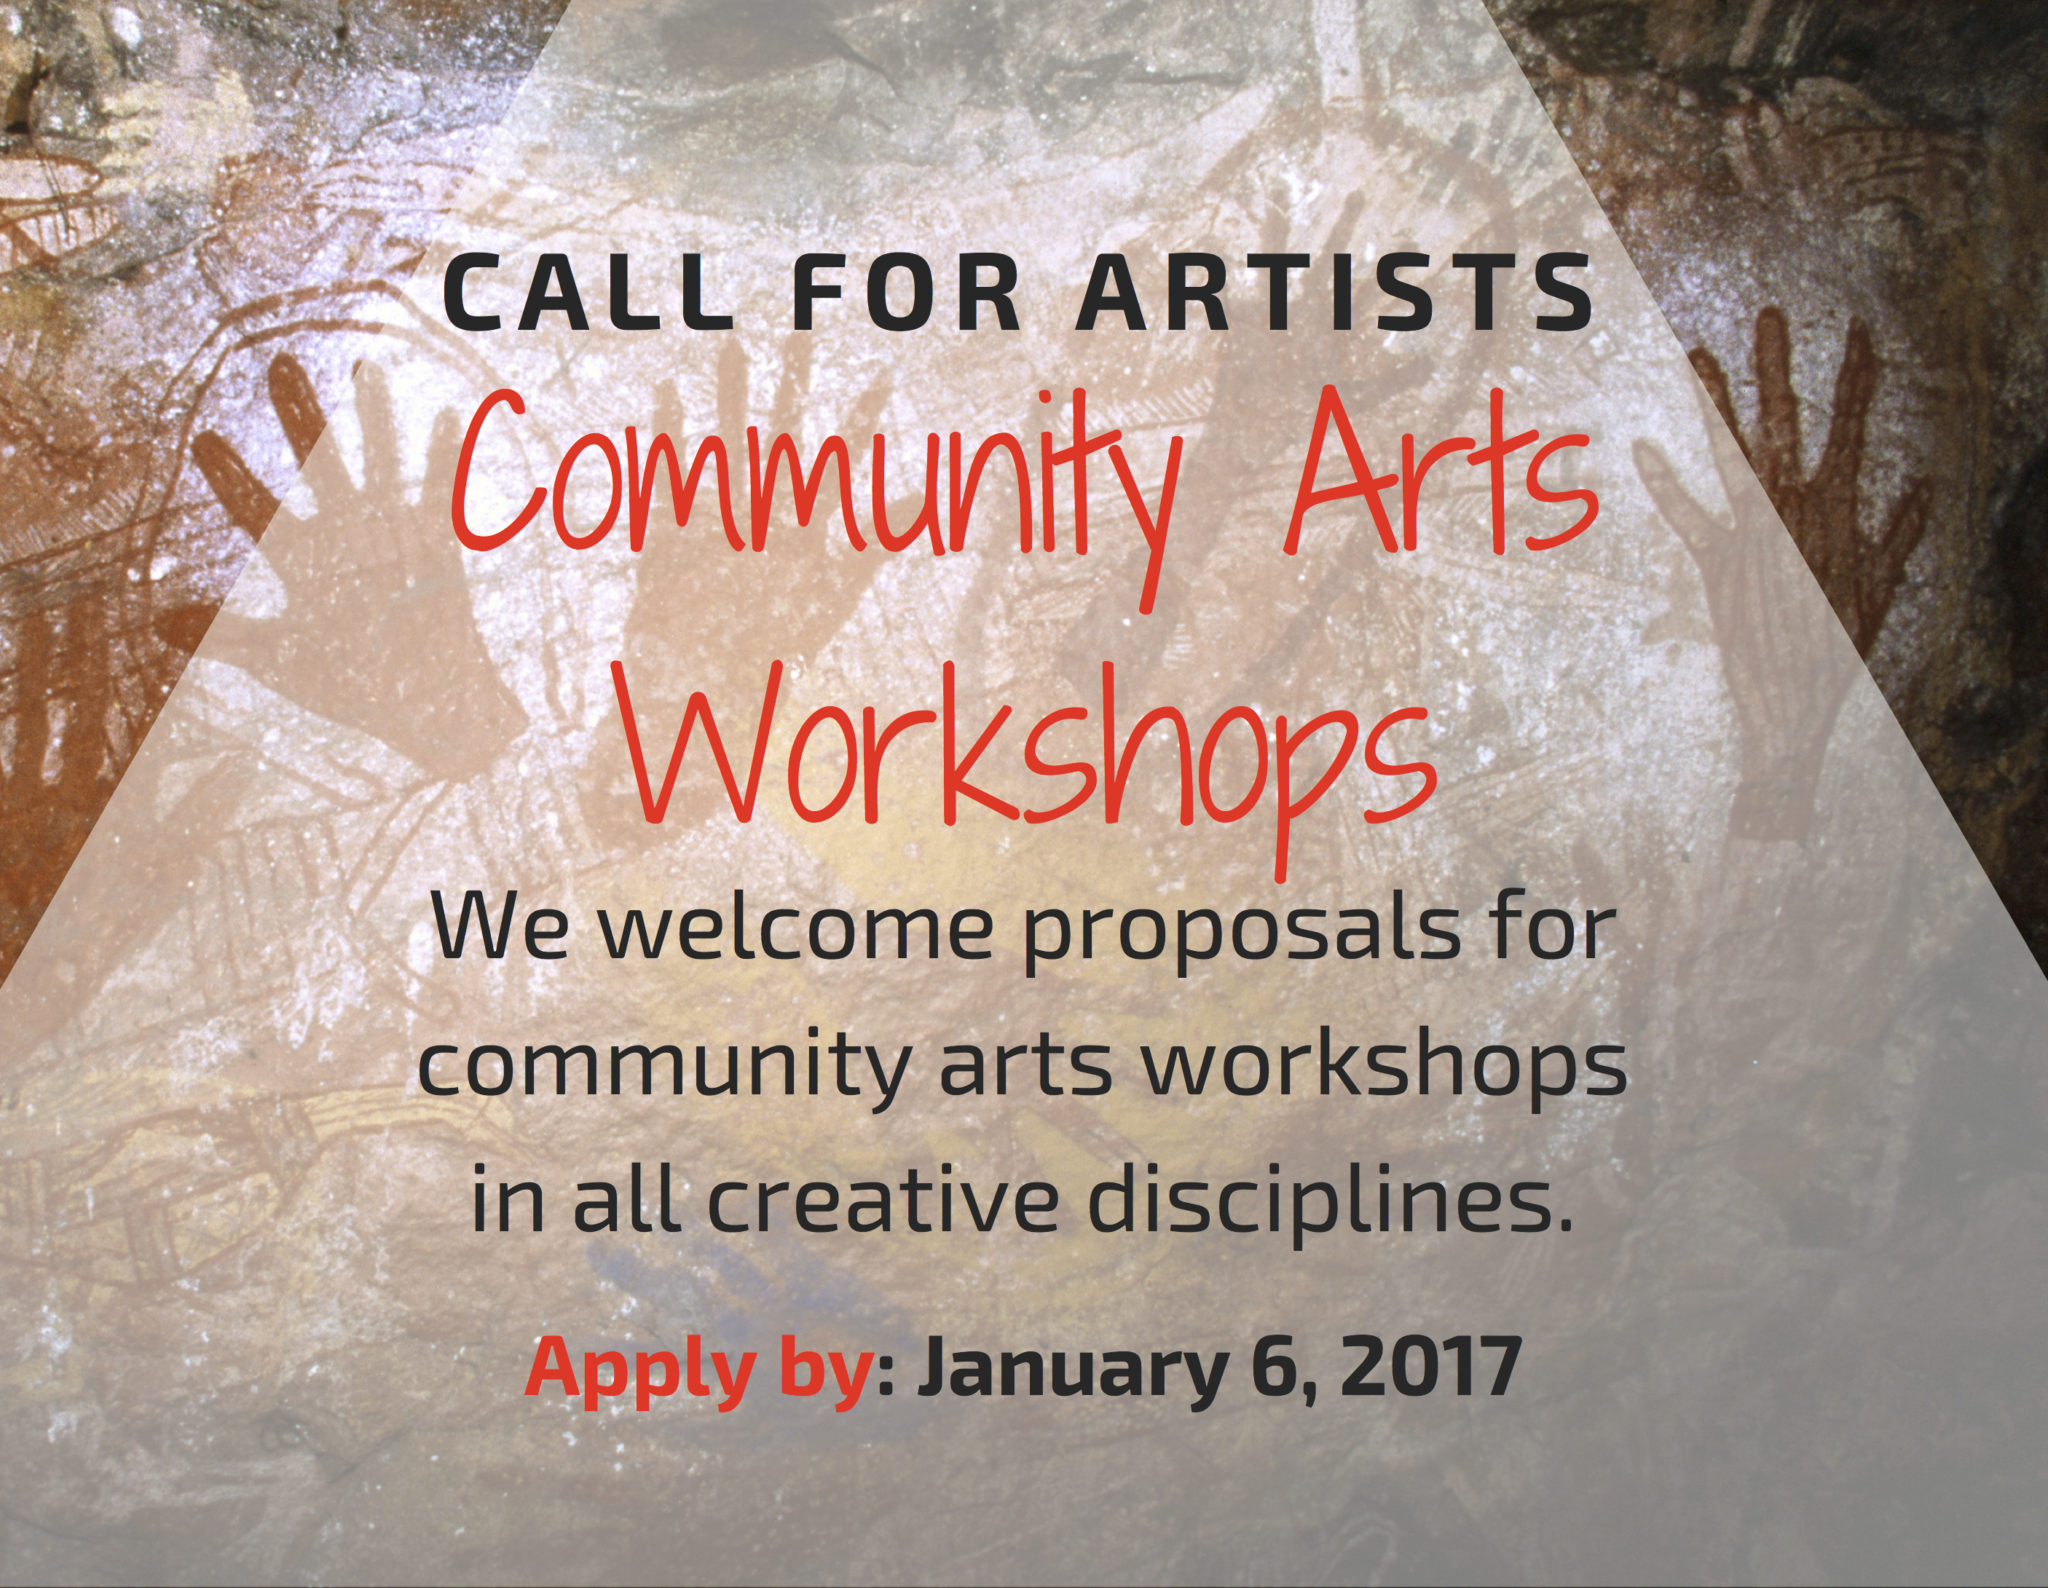 Call For Artists: Community Arts Workshops